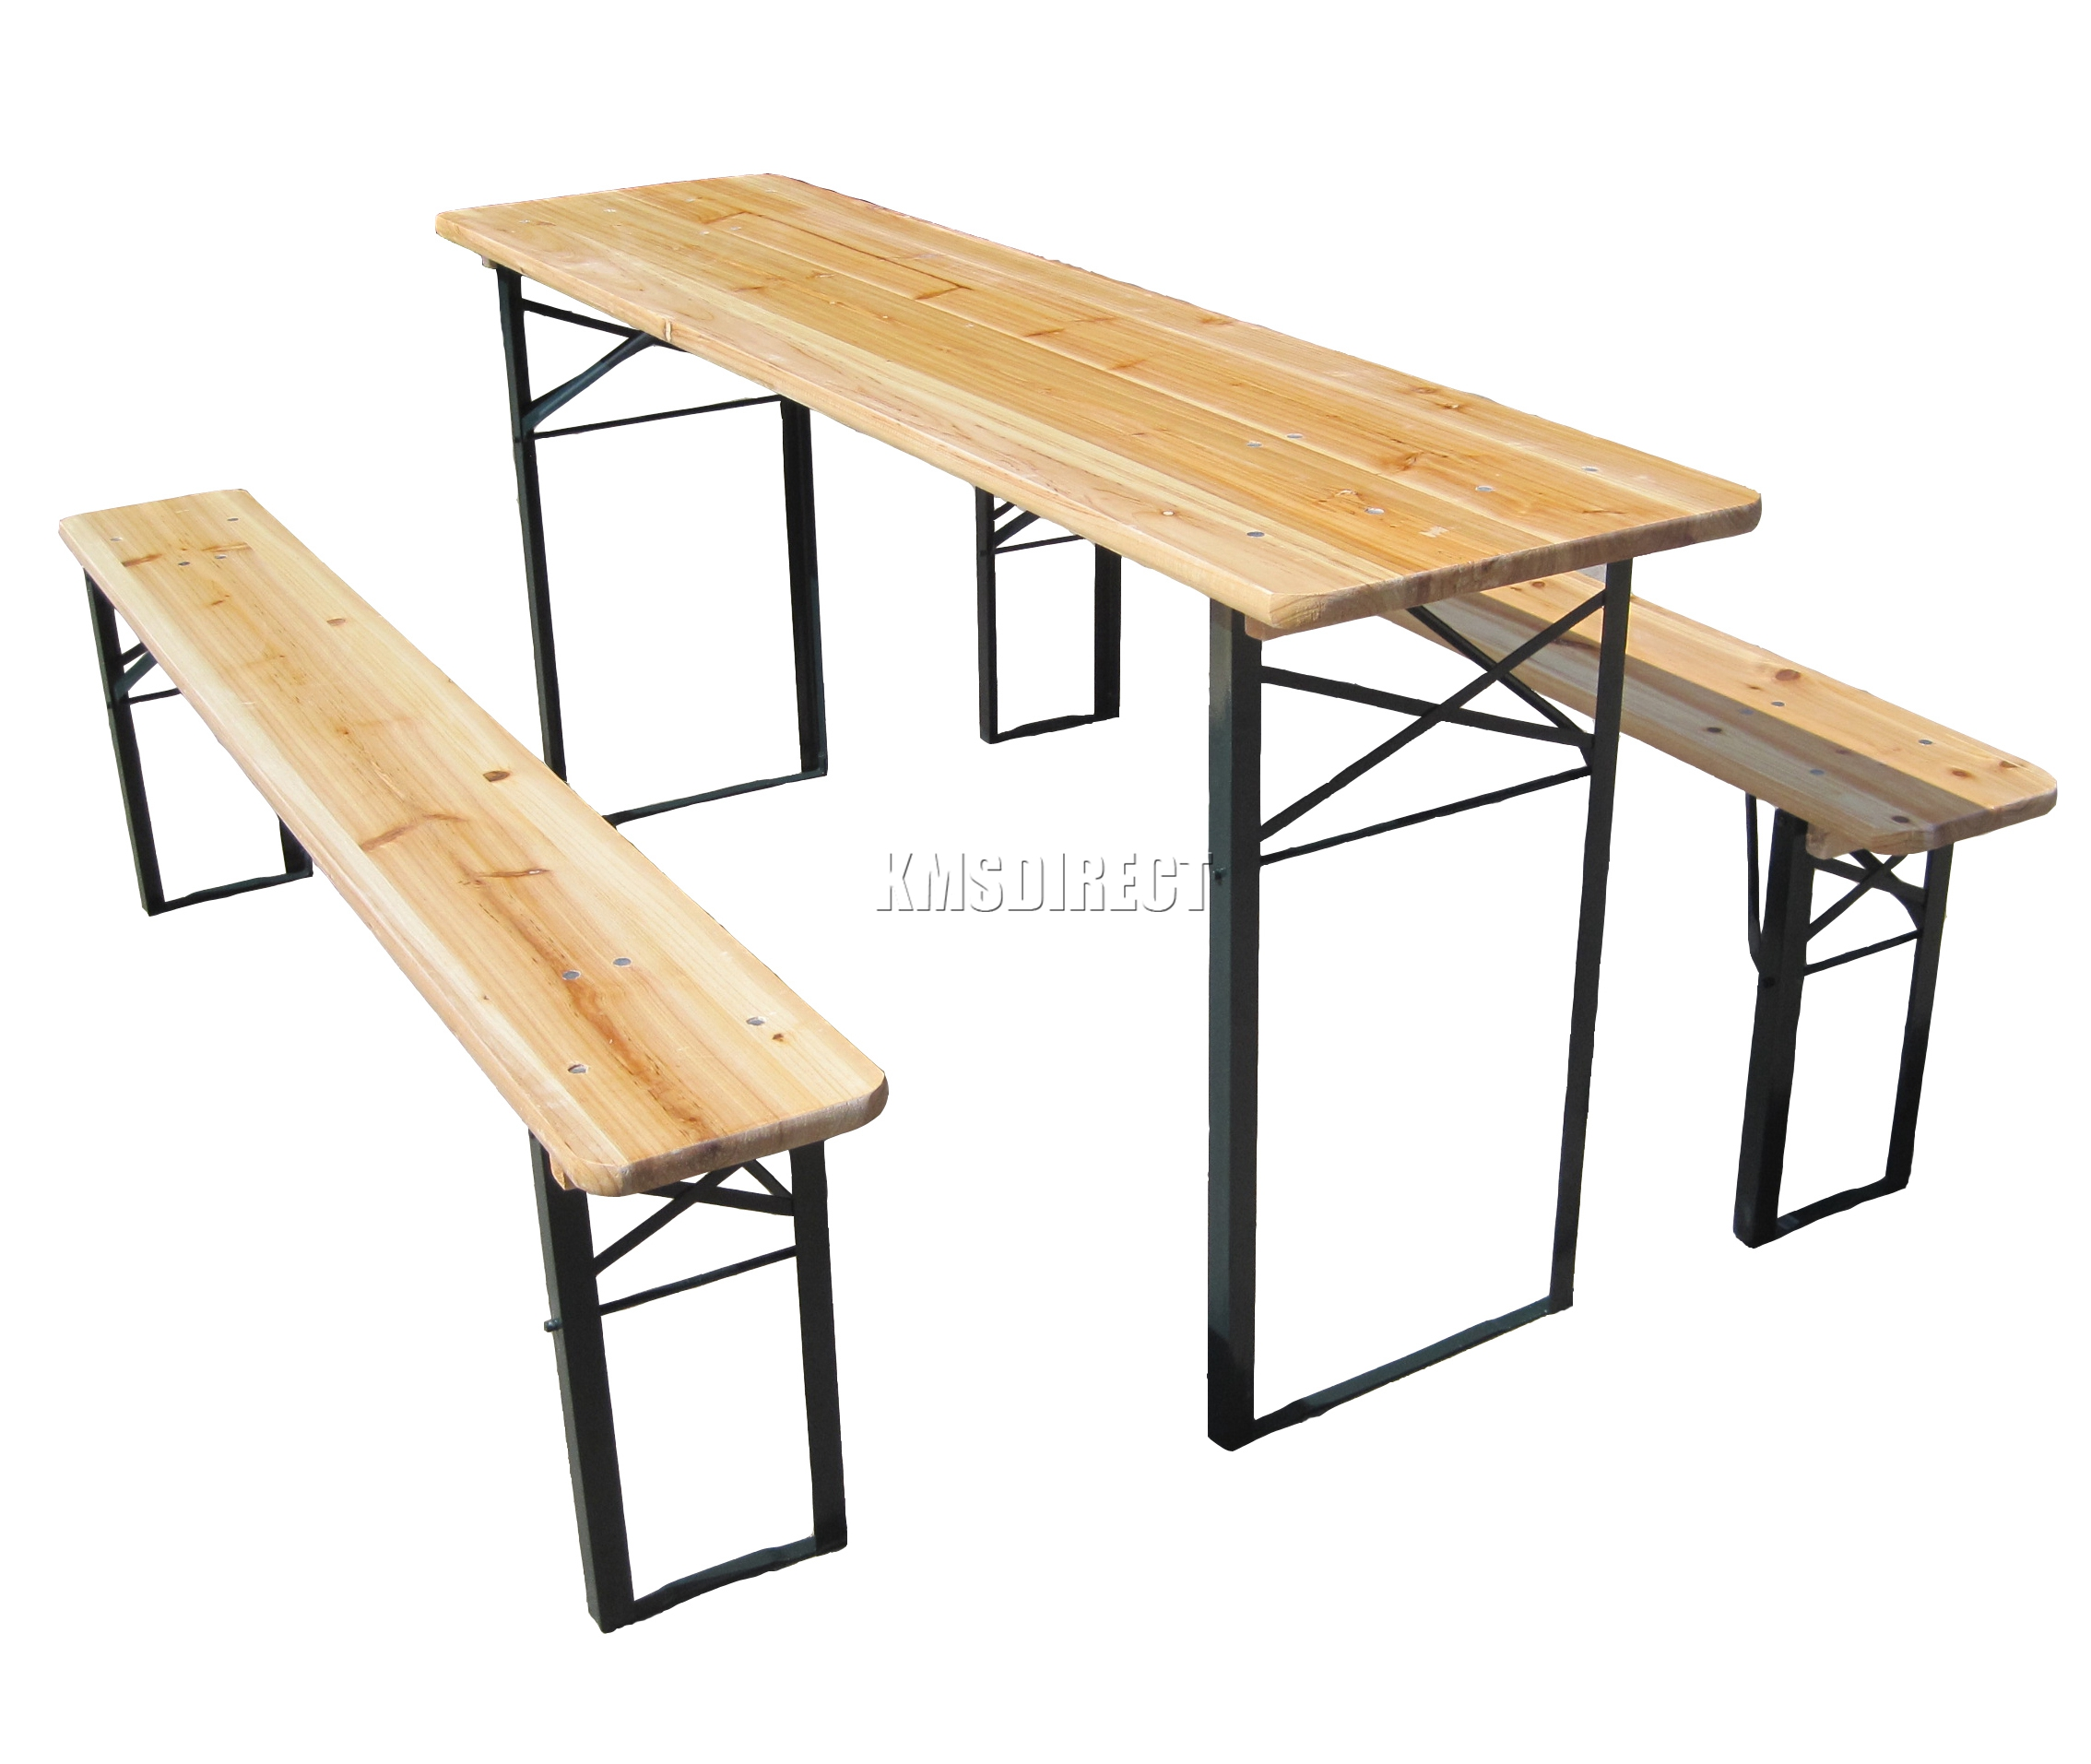 bench ideas inspirational watchthetrailerfo of table decoration folding plans formabuona gallery beautiful picnic